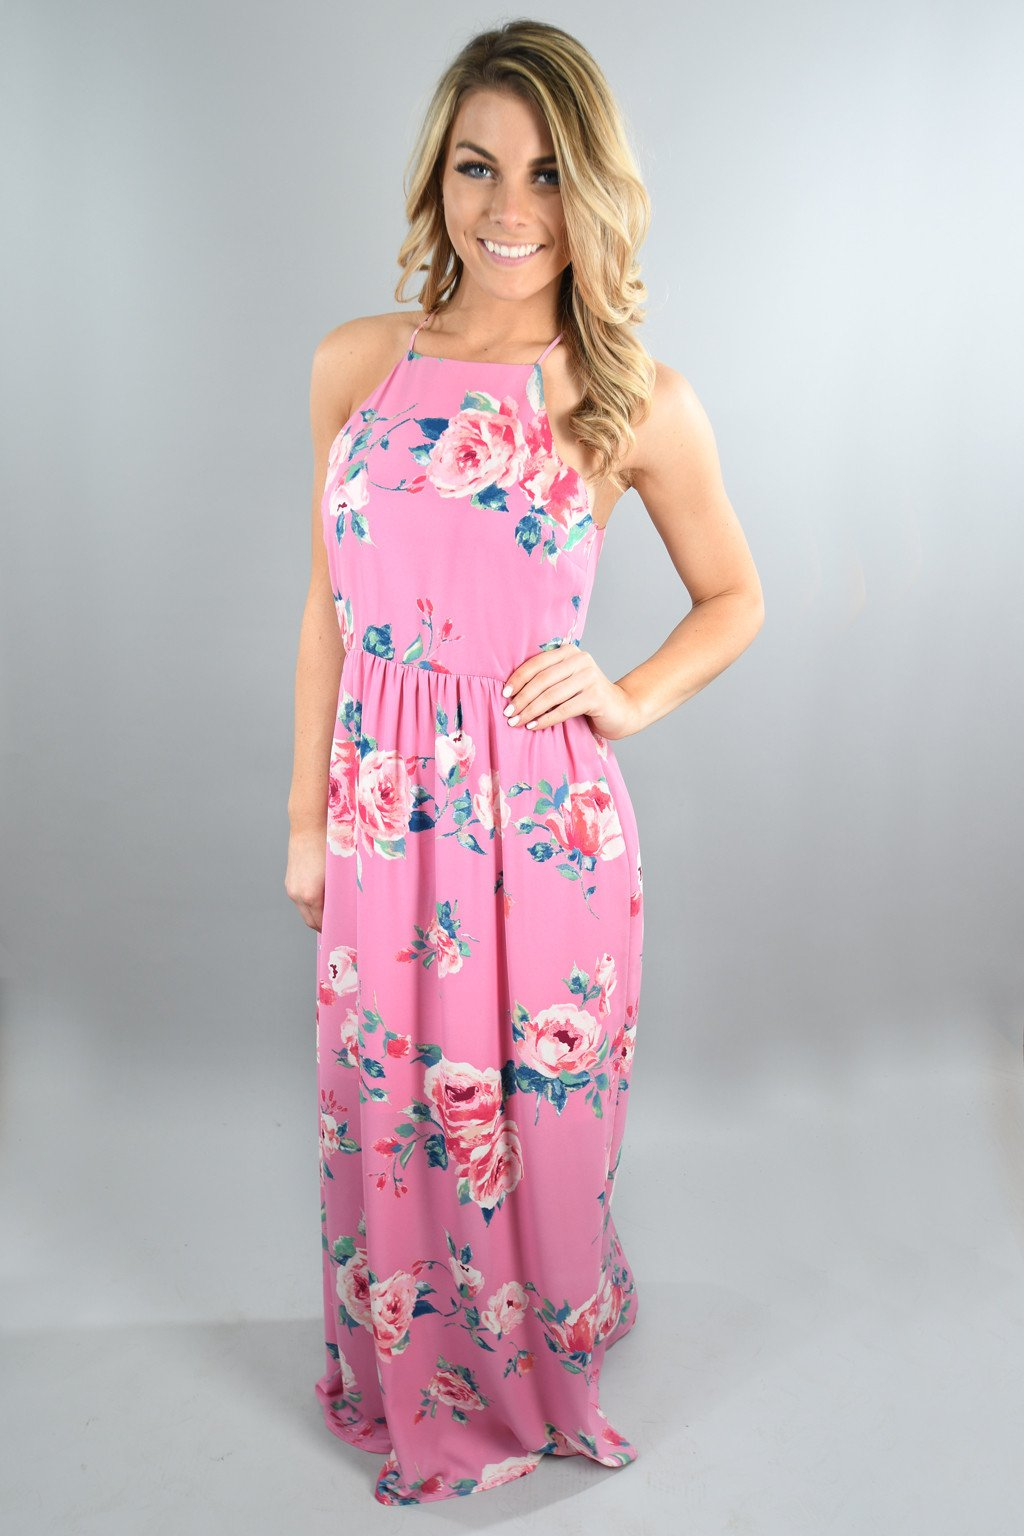 Feeling Magical in Pink Floral Maxi Dress